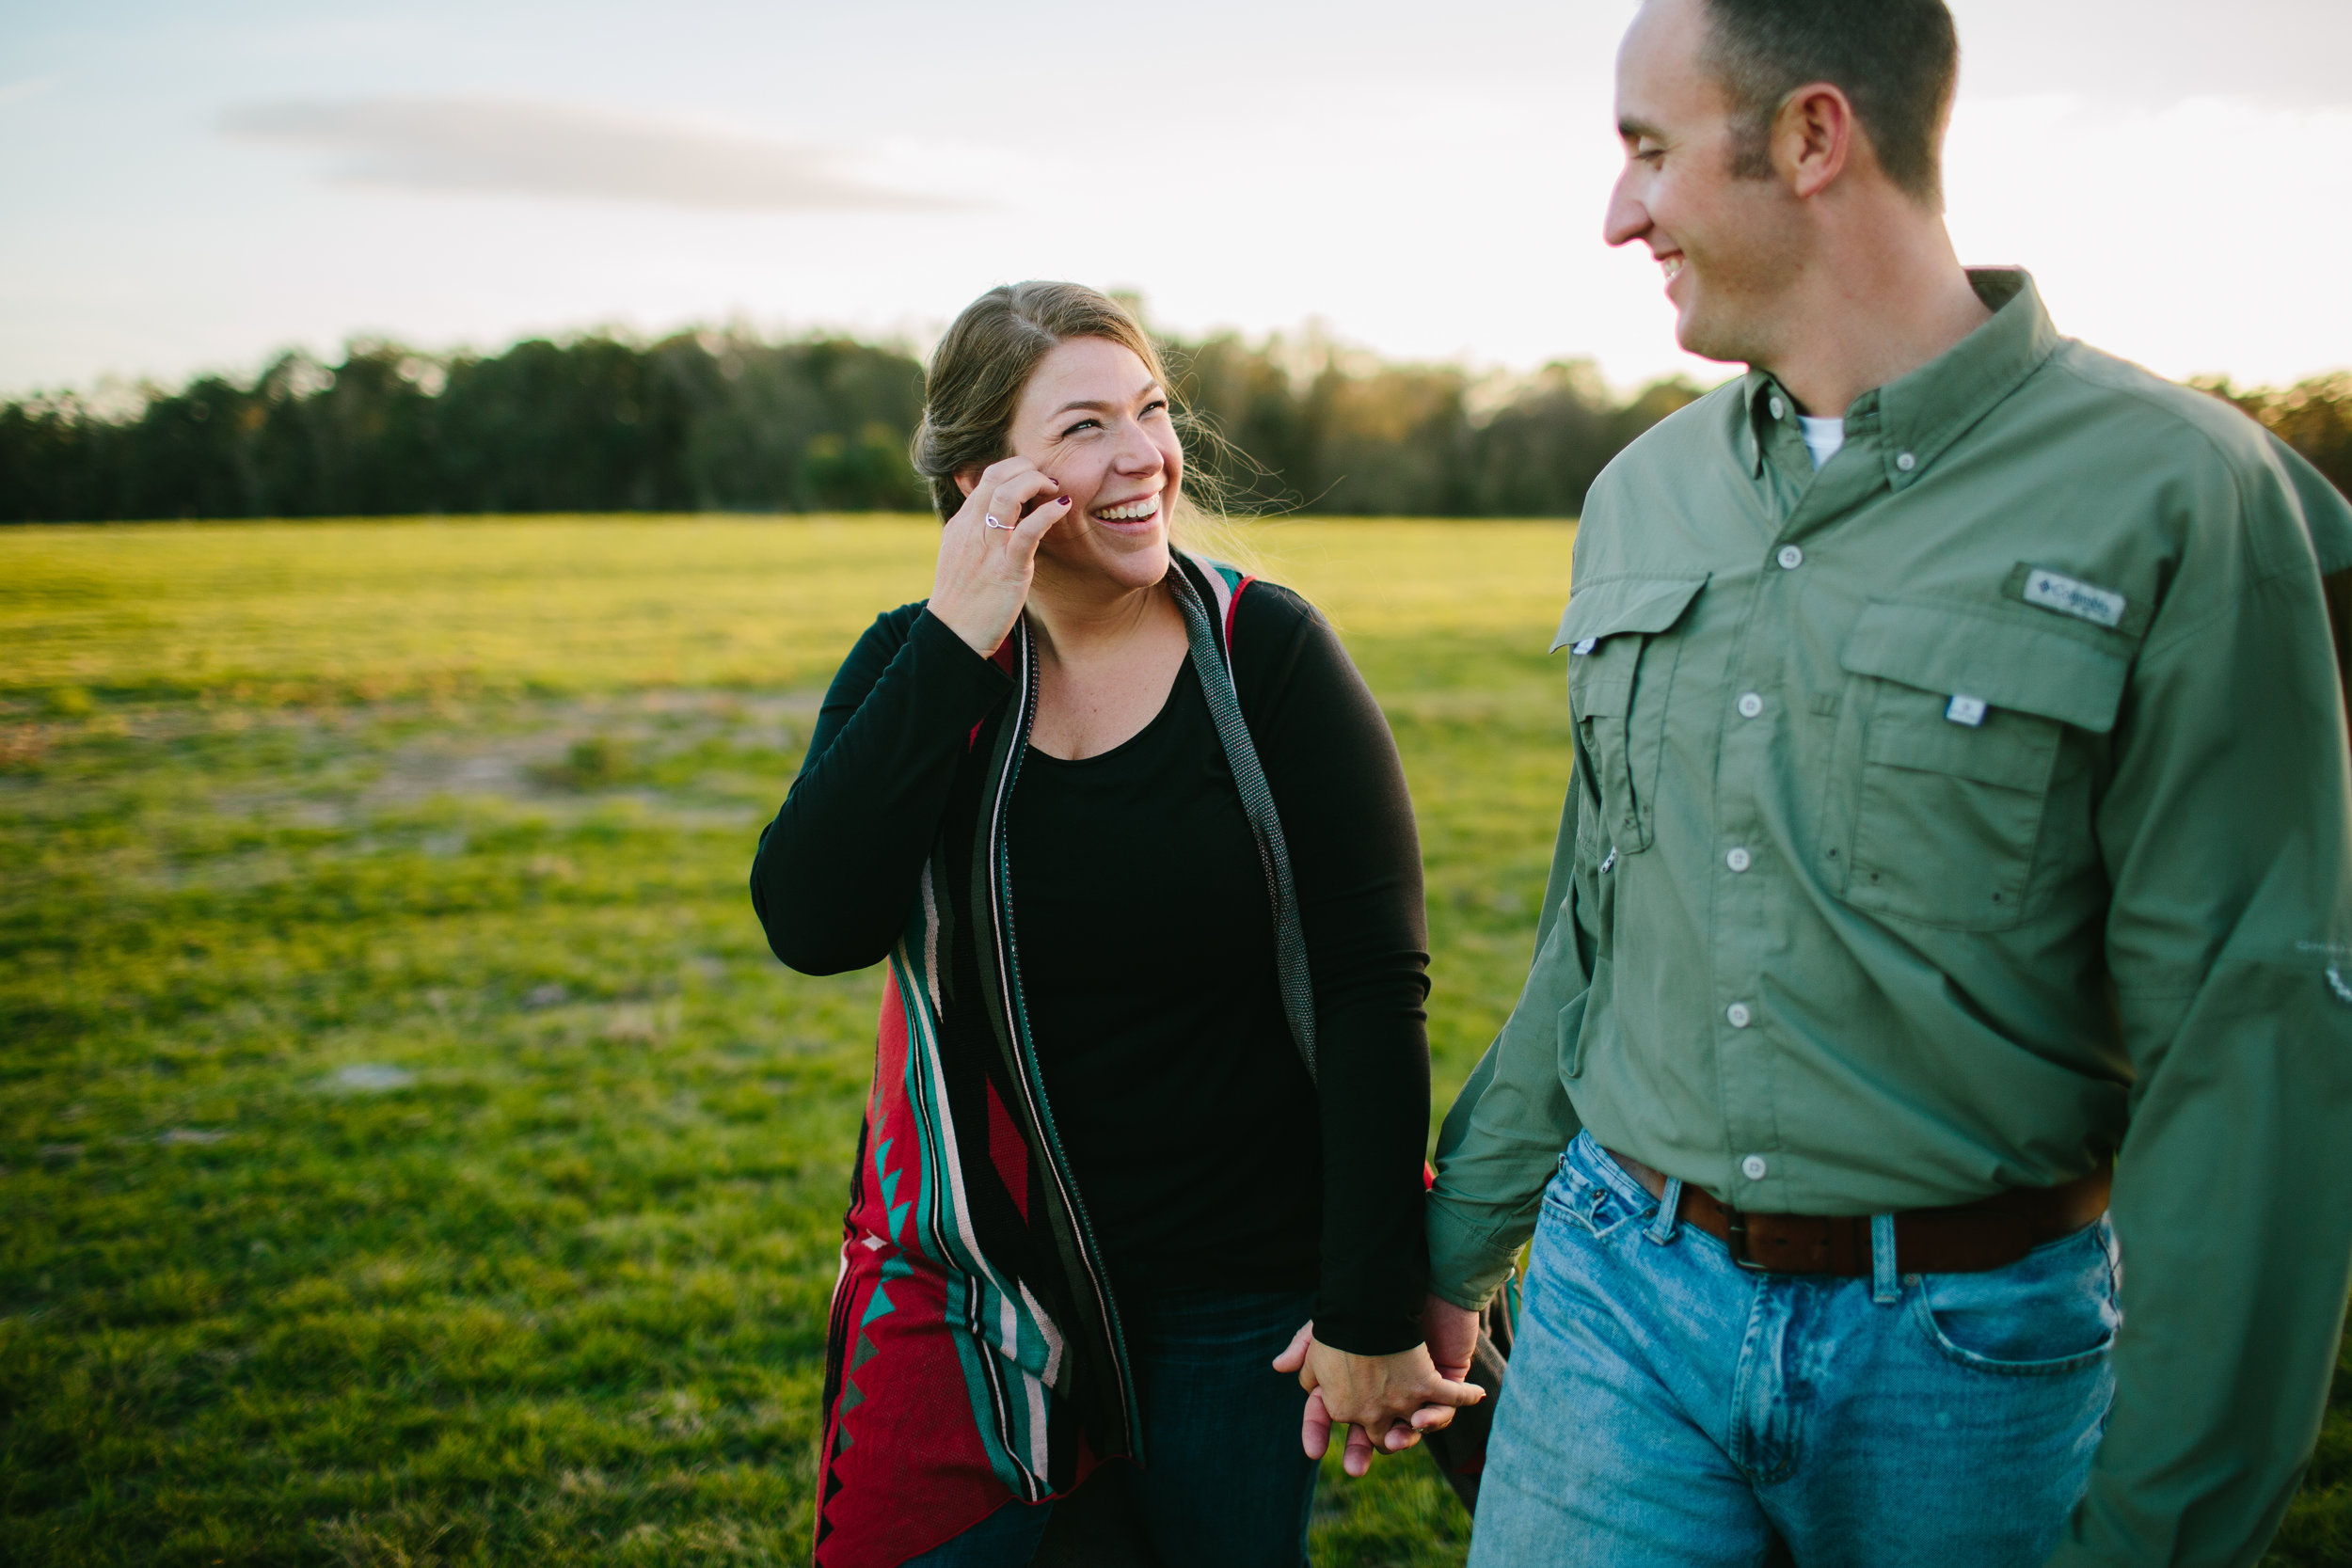 CSP-Charlee-Mike-Engagement-124.jpg